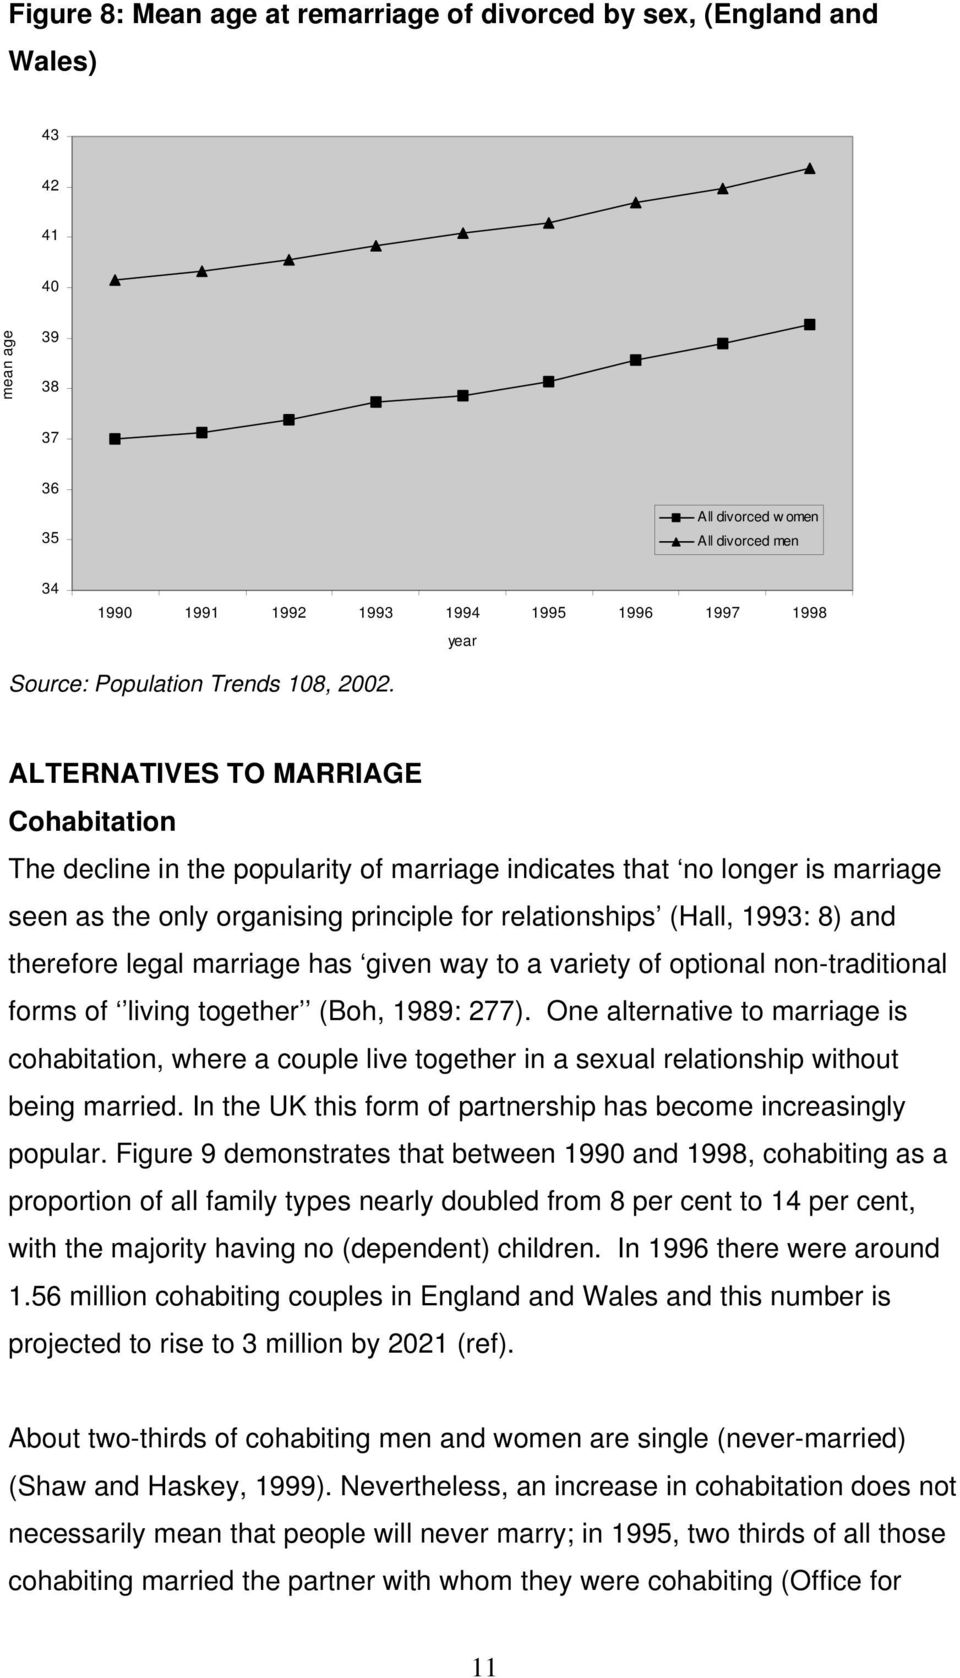 ALTERNATIVES TO MARRIAGE Cohabitation The decline in the popularity of marriage indicates that no longer is marriage seen as the only organising principle for relationships (Hall, 1993: 8) and